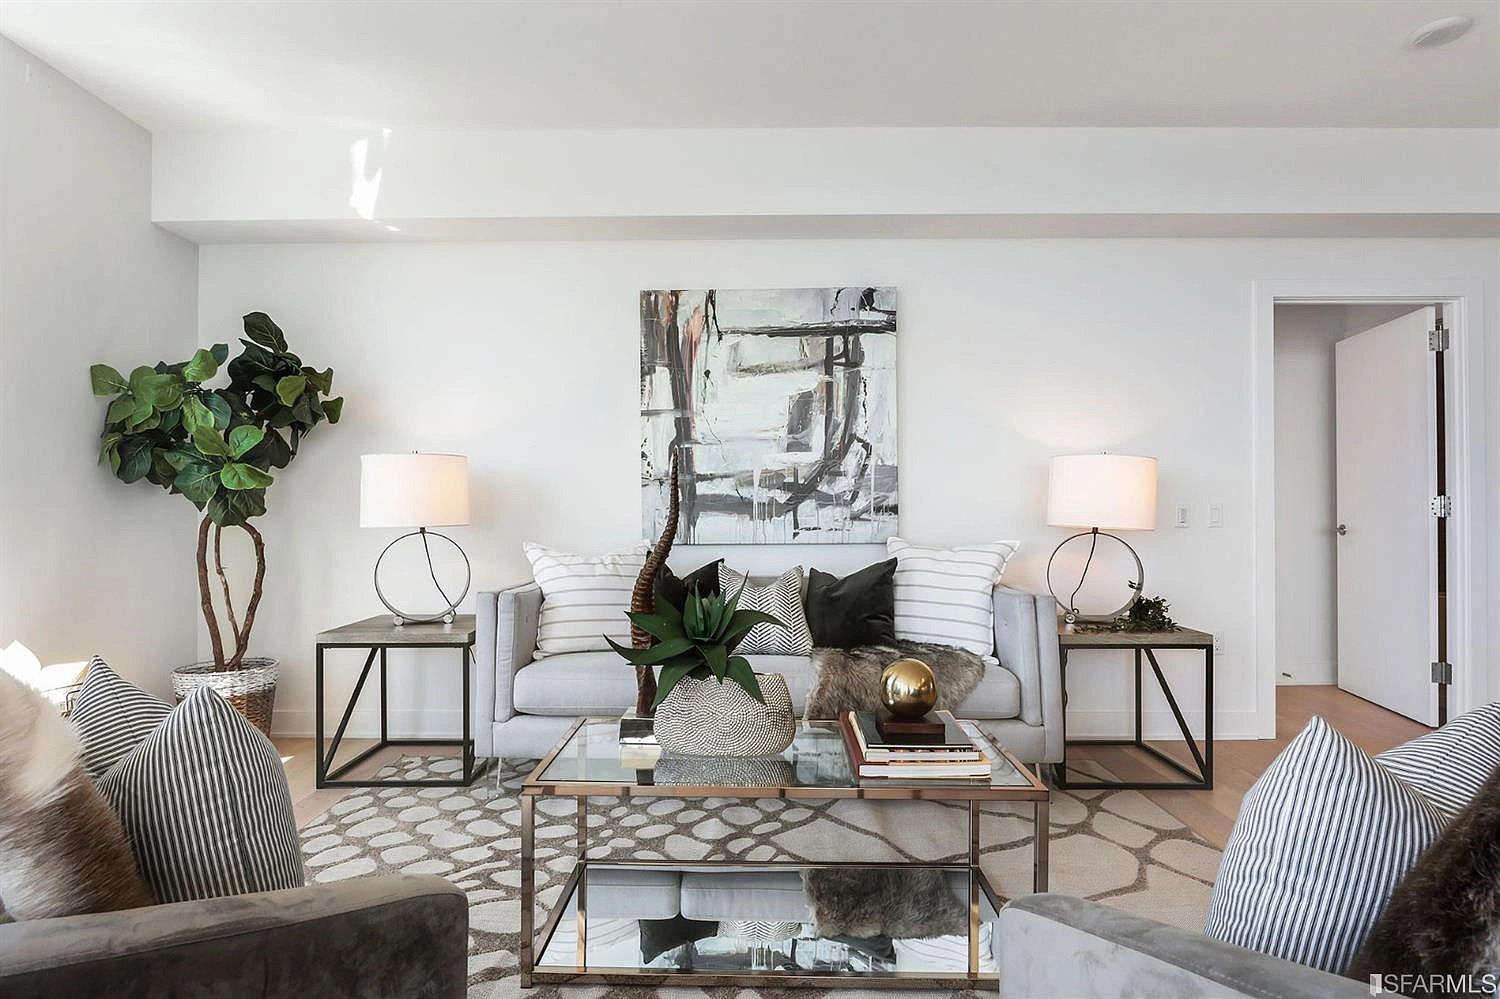 338 Main St UNIT 35C, San Francisco, CA 94105 - $3,250,000 home for sale, house images, photos and pics gallery